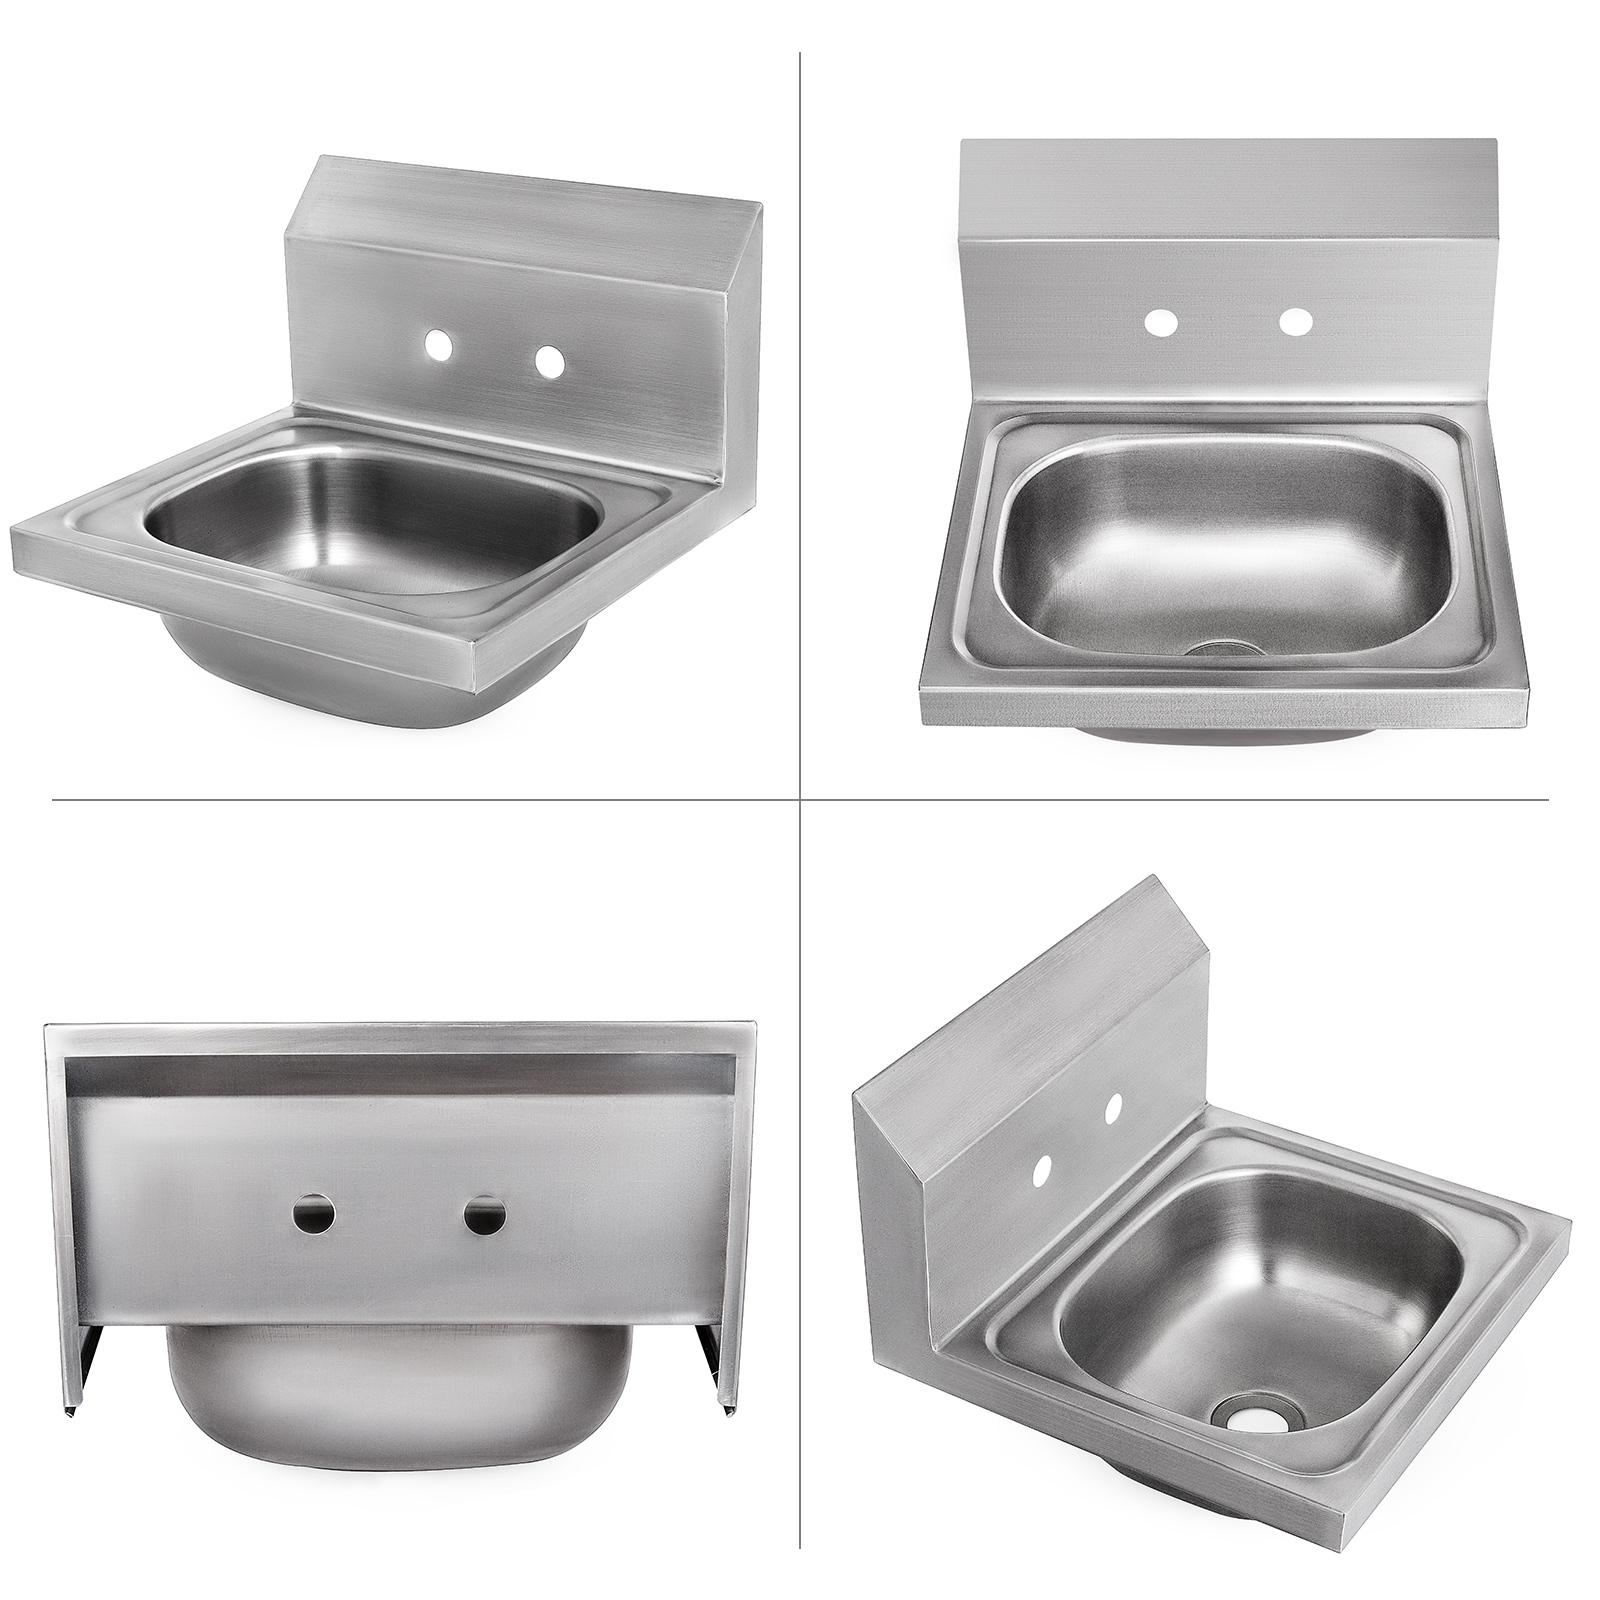 """15.7X 15.4"""" Steel Handmade Single Bowl Sink Commercial Cafe Shop Wall Mount"""